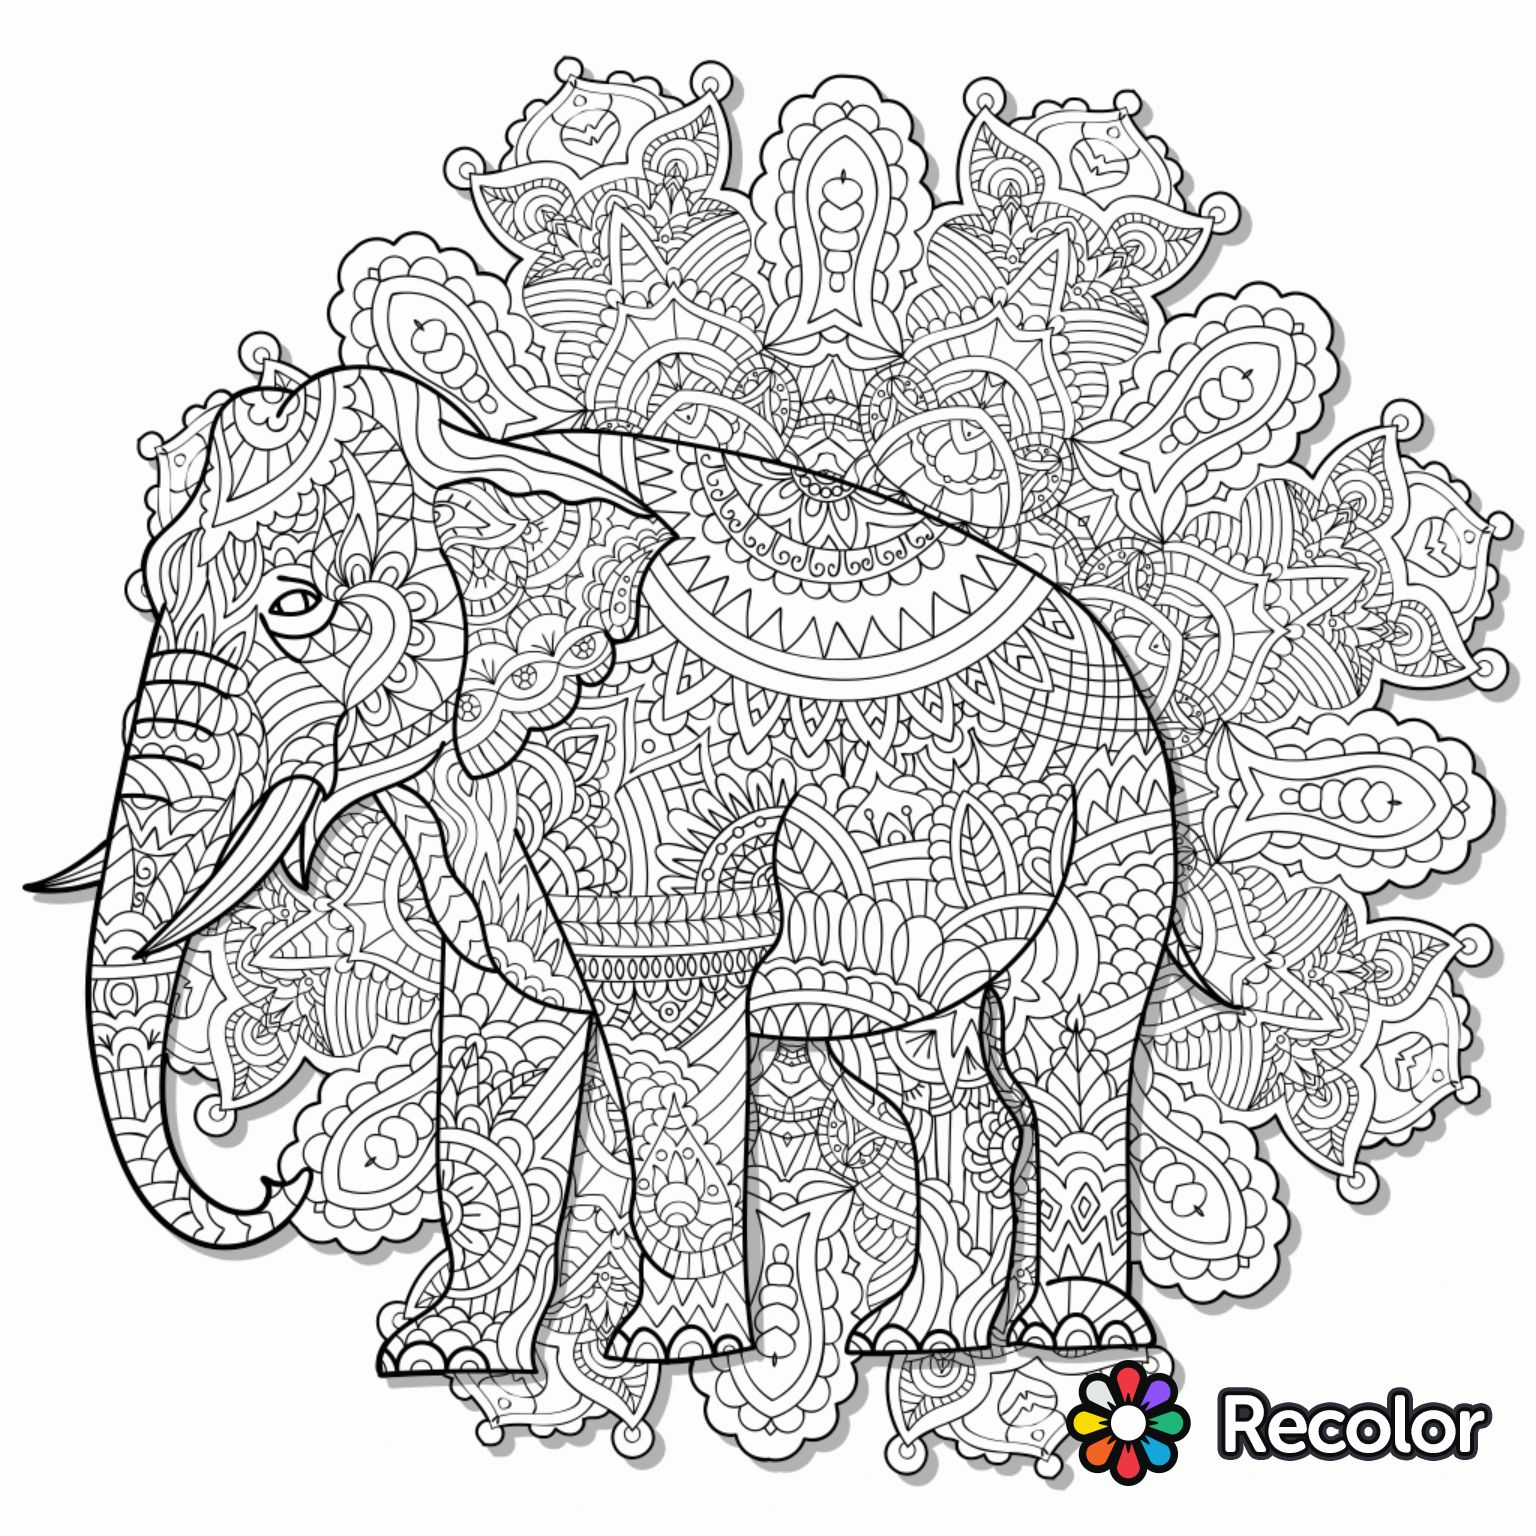 Elephant coloring page | Recolor coloring app | Colouring ...